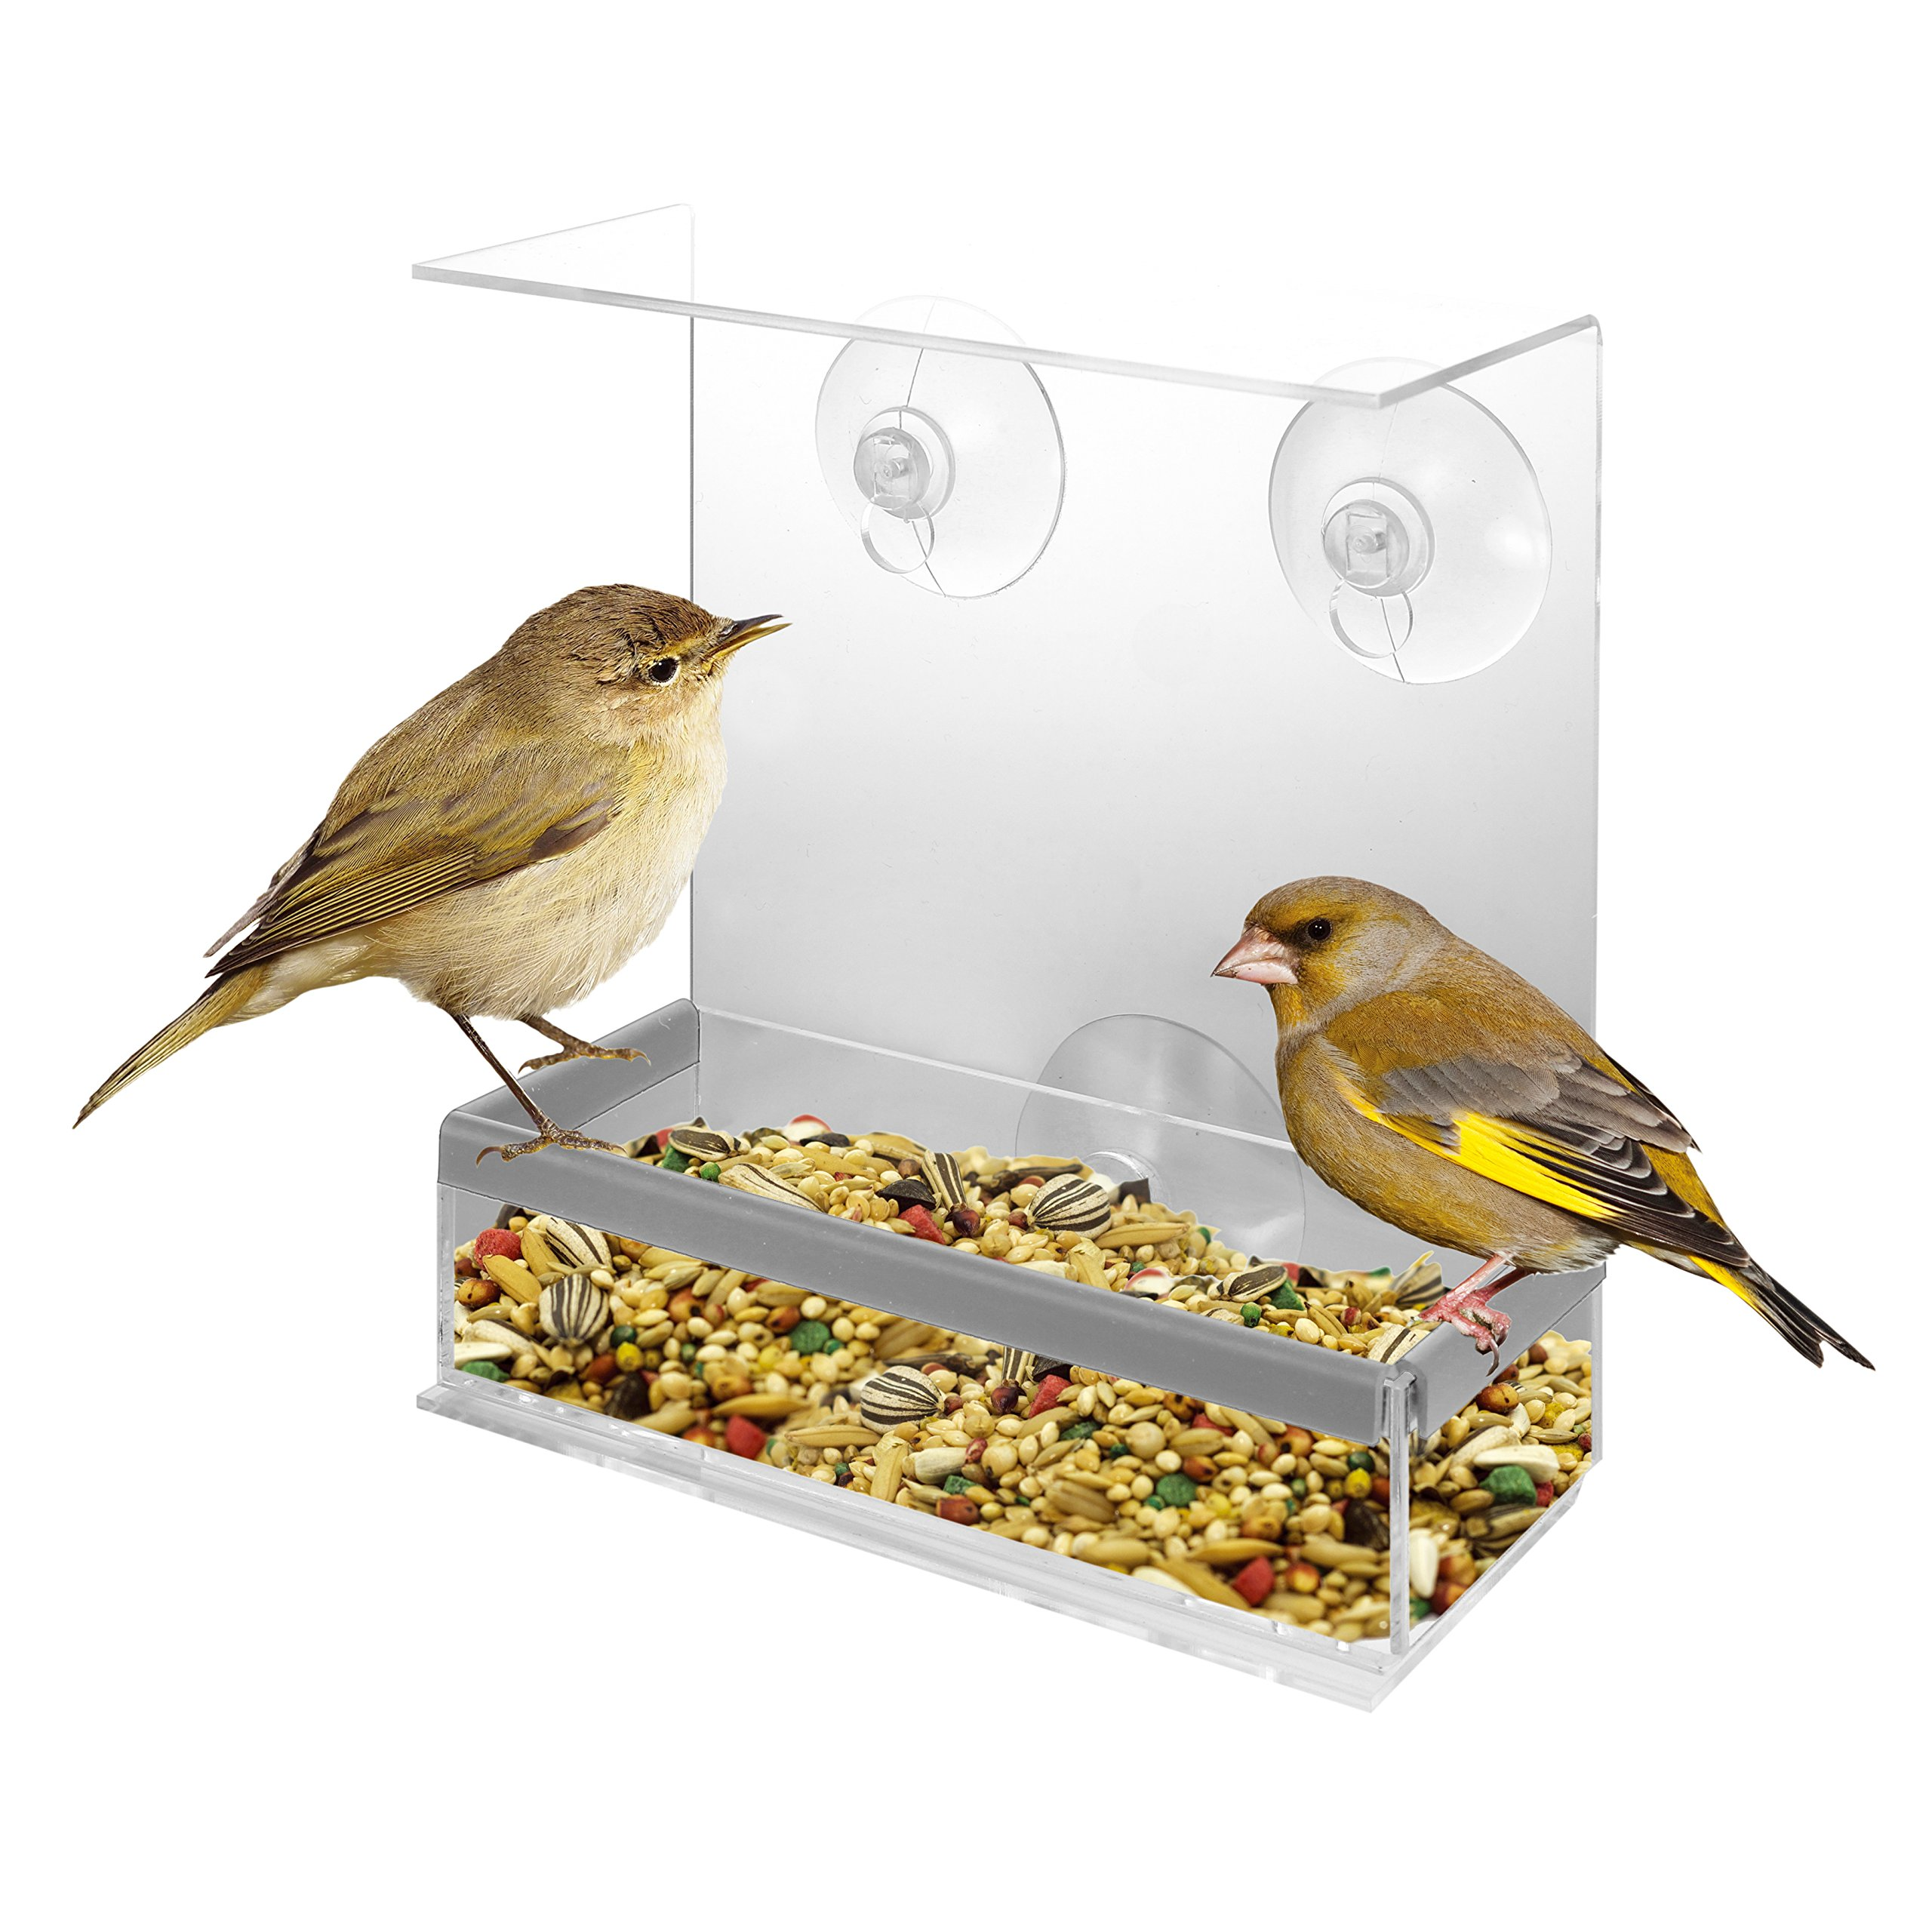 KOVOT Acrylic Window Bird Feeder and Perch - View Birds Close-Up From Inside Your Home (1)